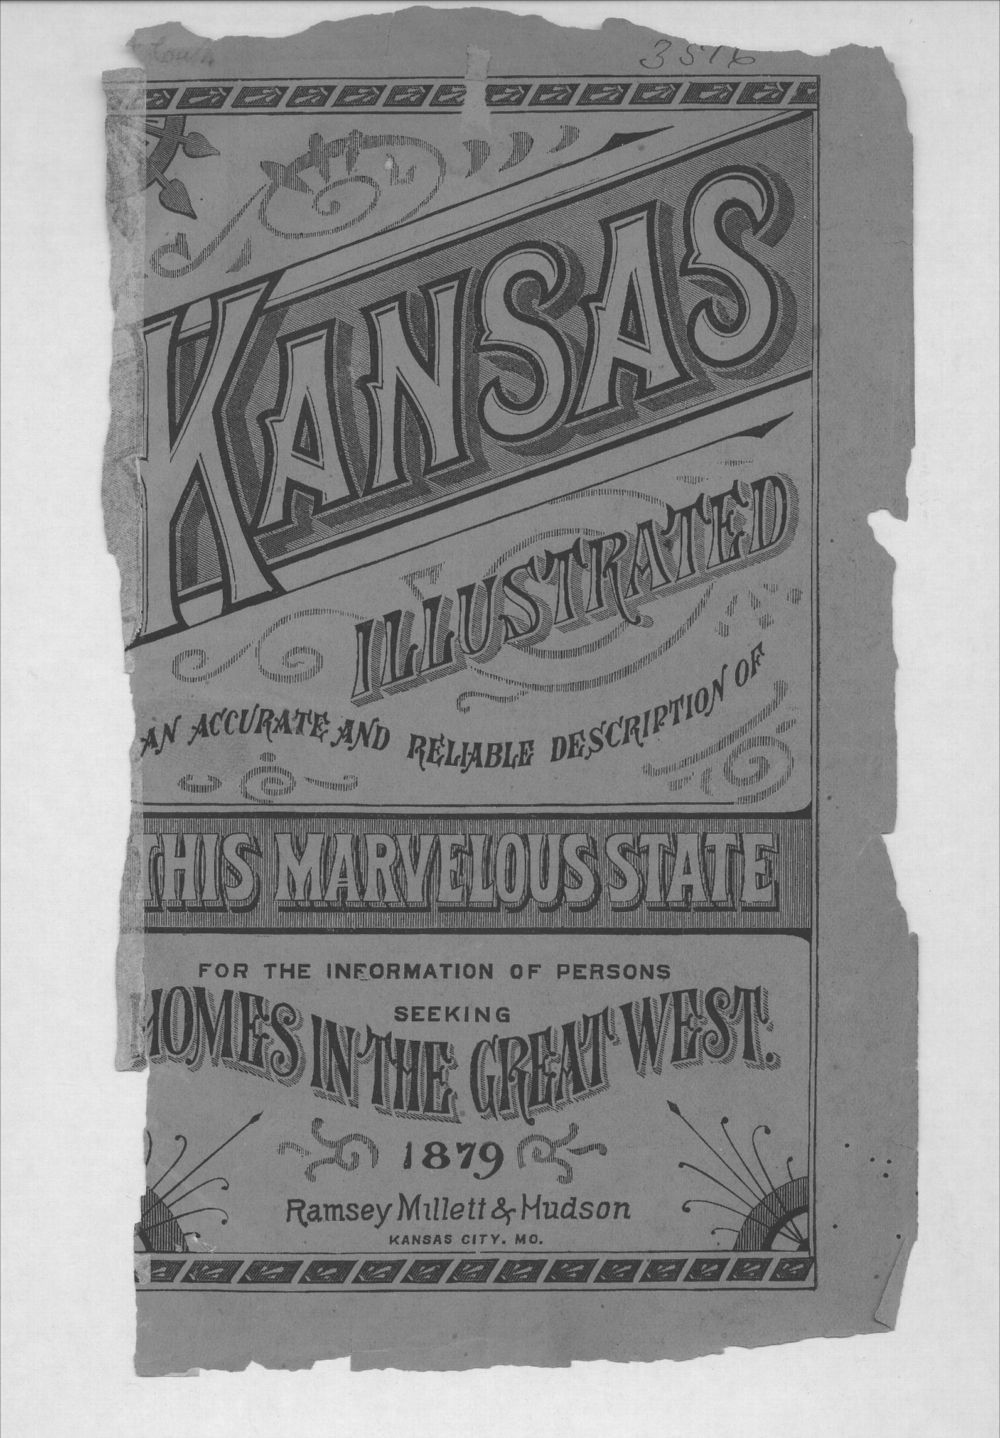 Kansas illustrated.   An accurate and reliable description of this marvelous state for the information of persons seeking homes in the great west - Front Cover